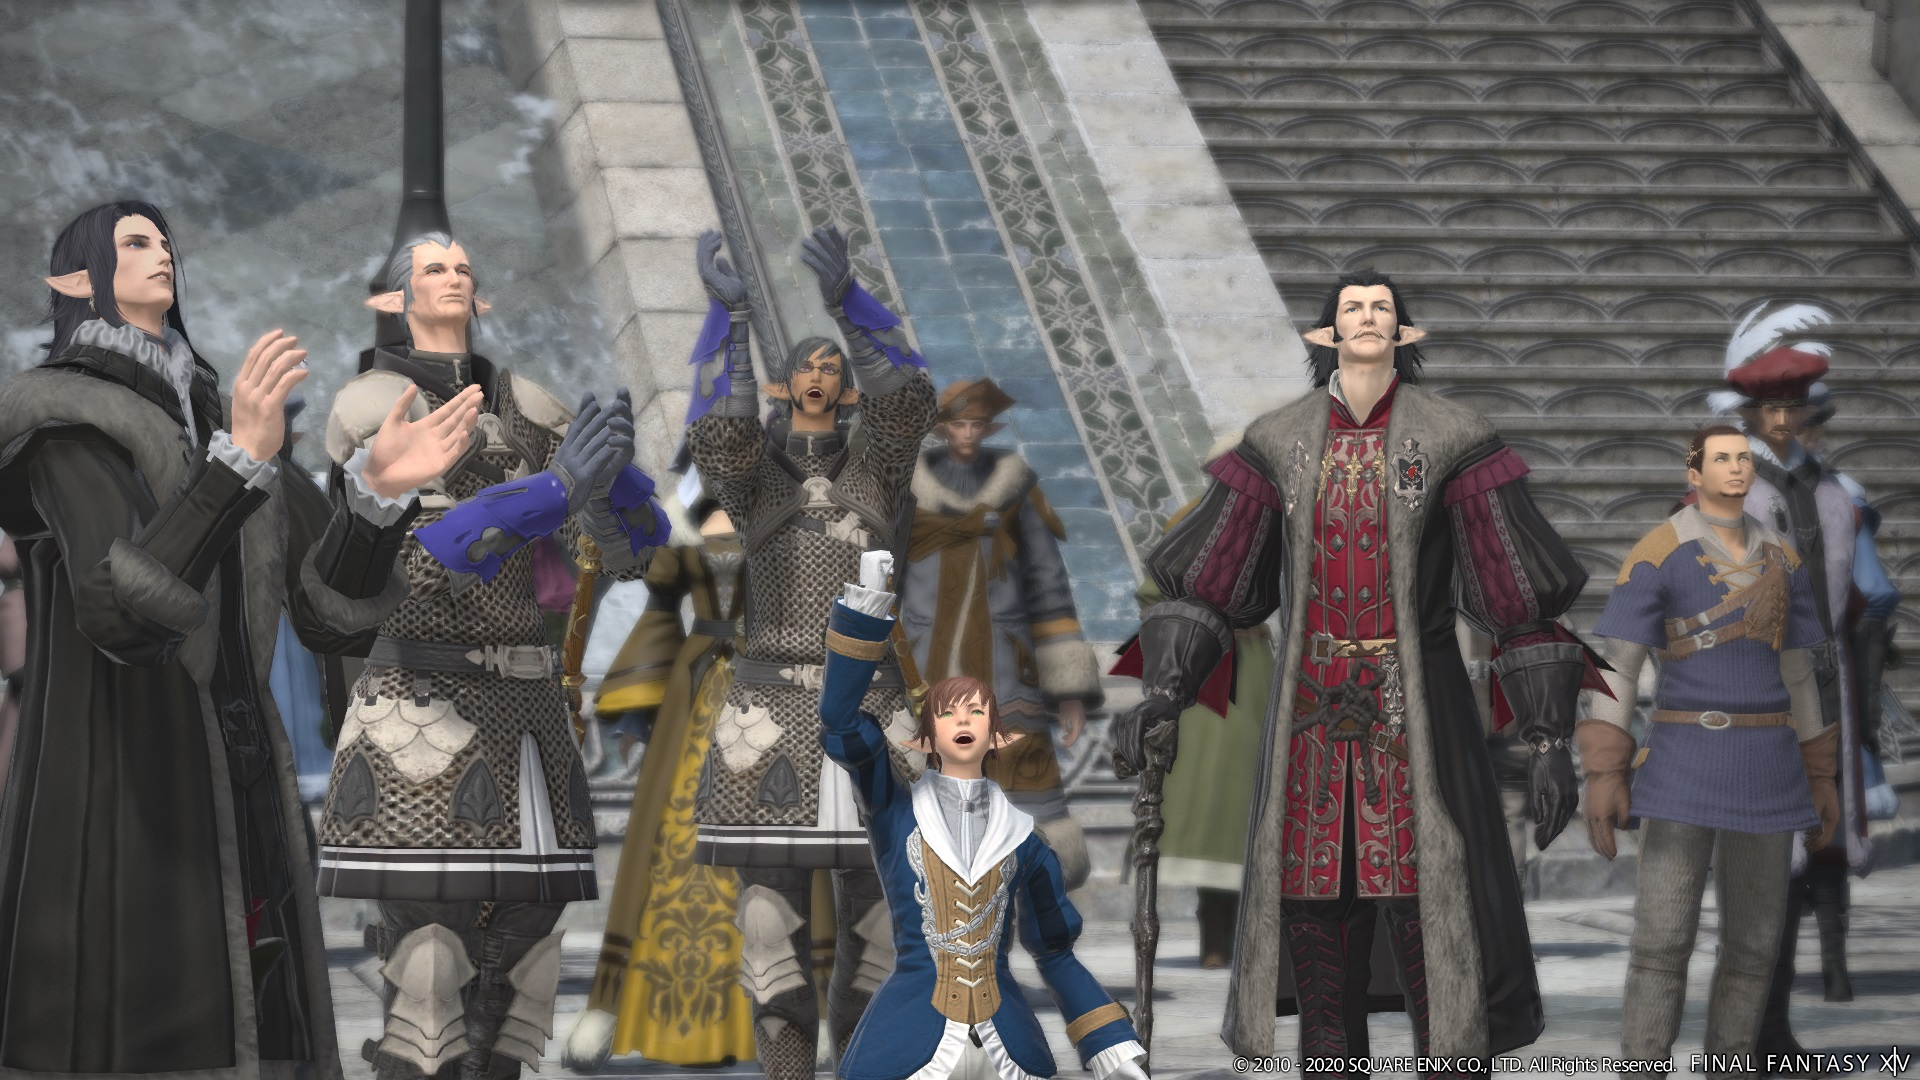 Final Fantasy XIV Online World Visit system has just been temporarily suspended